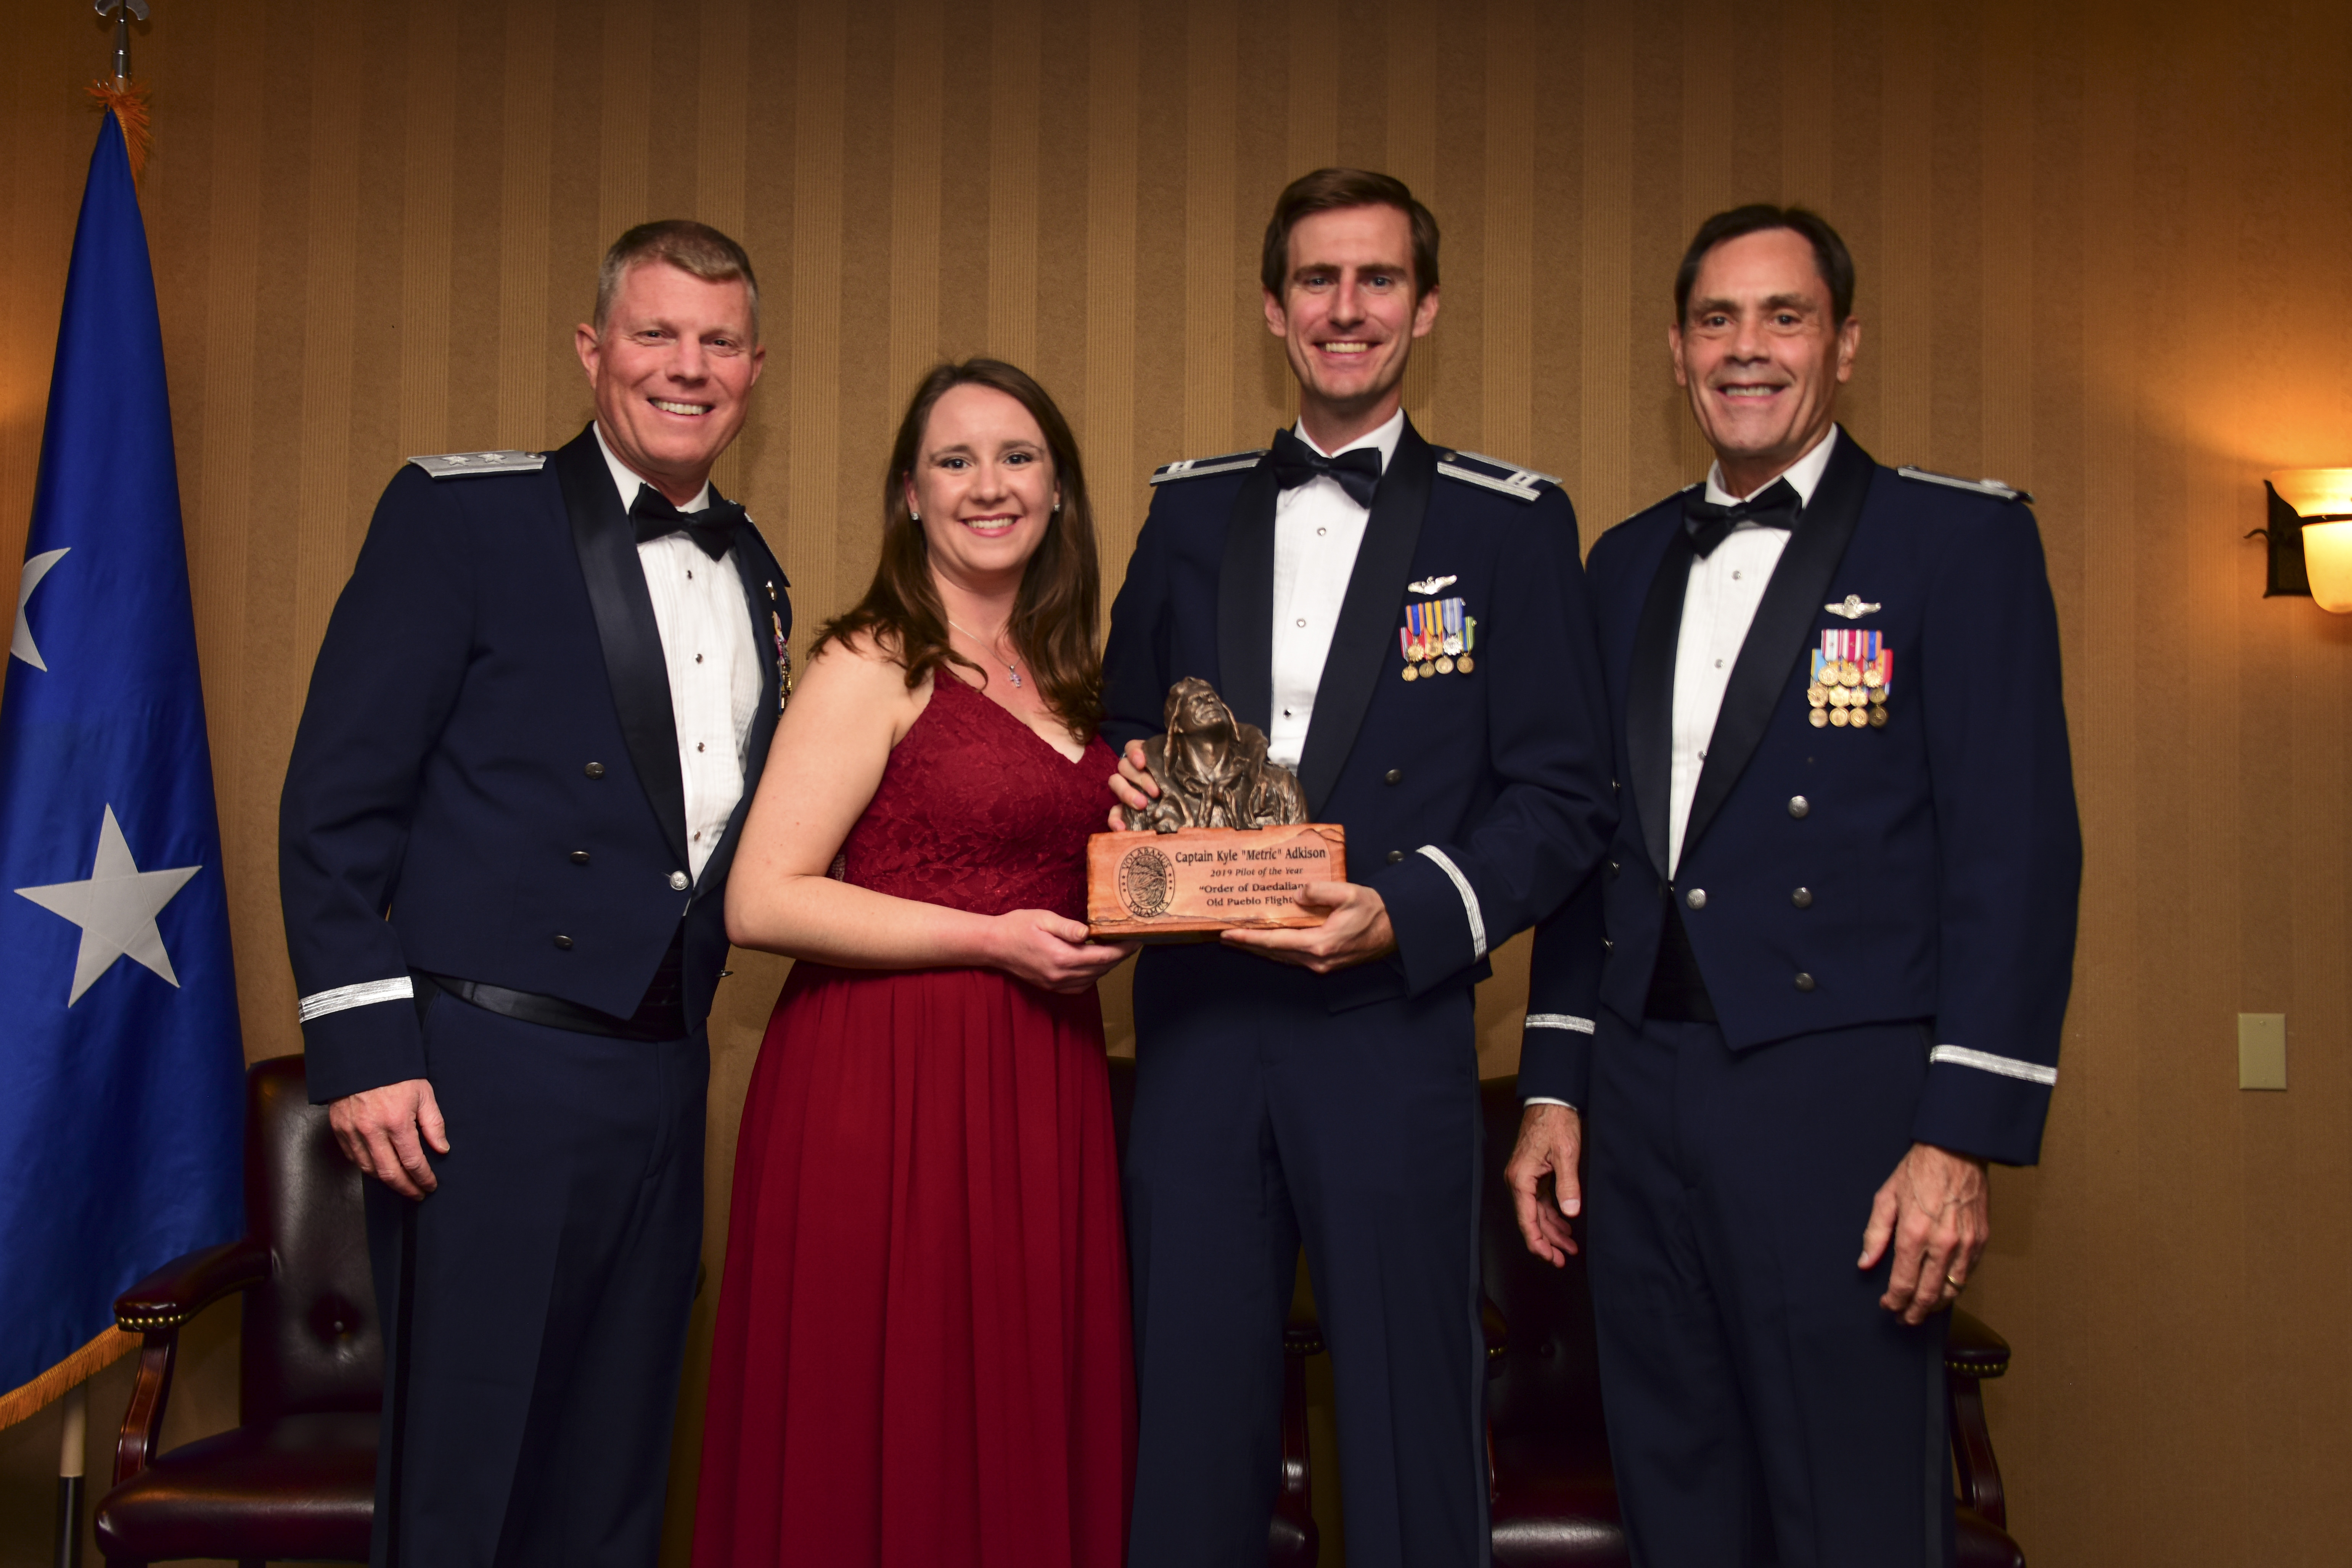 An image of Capt Lozano, the 2018 Pilot of the Year.